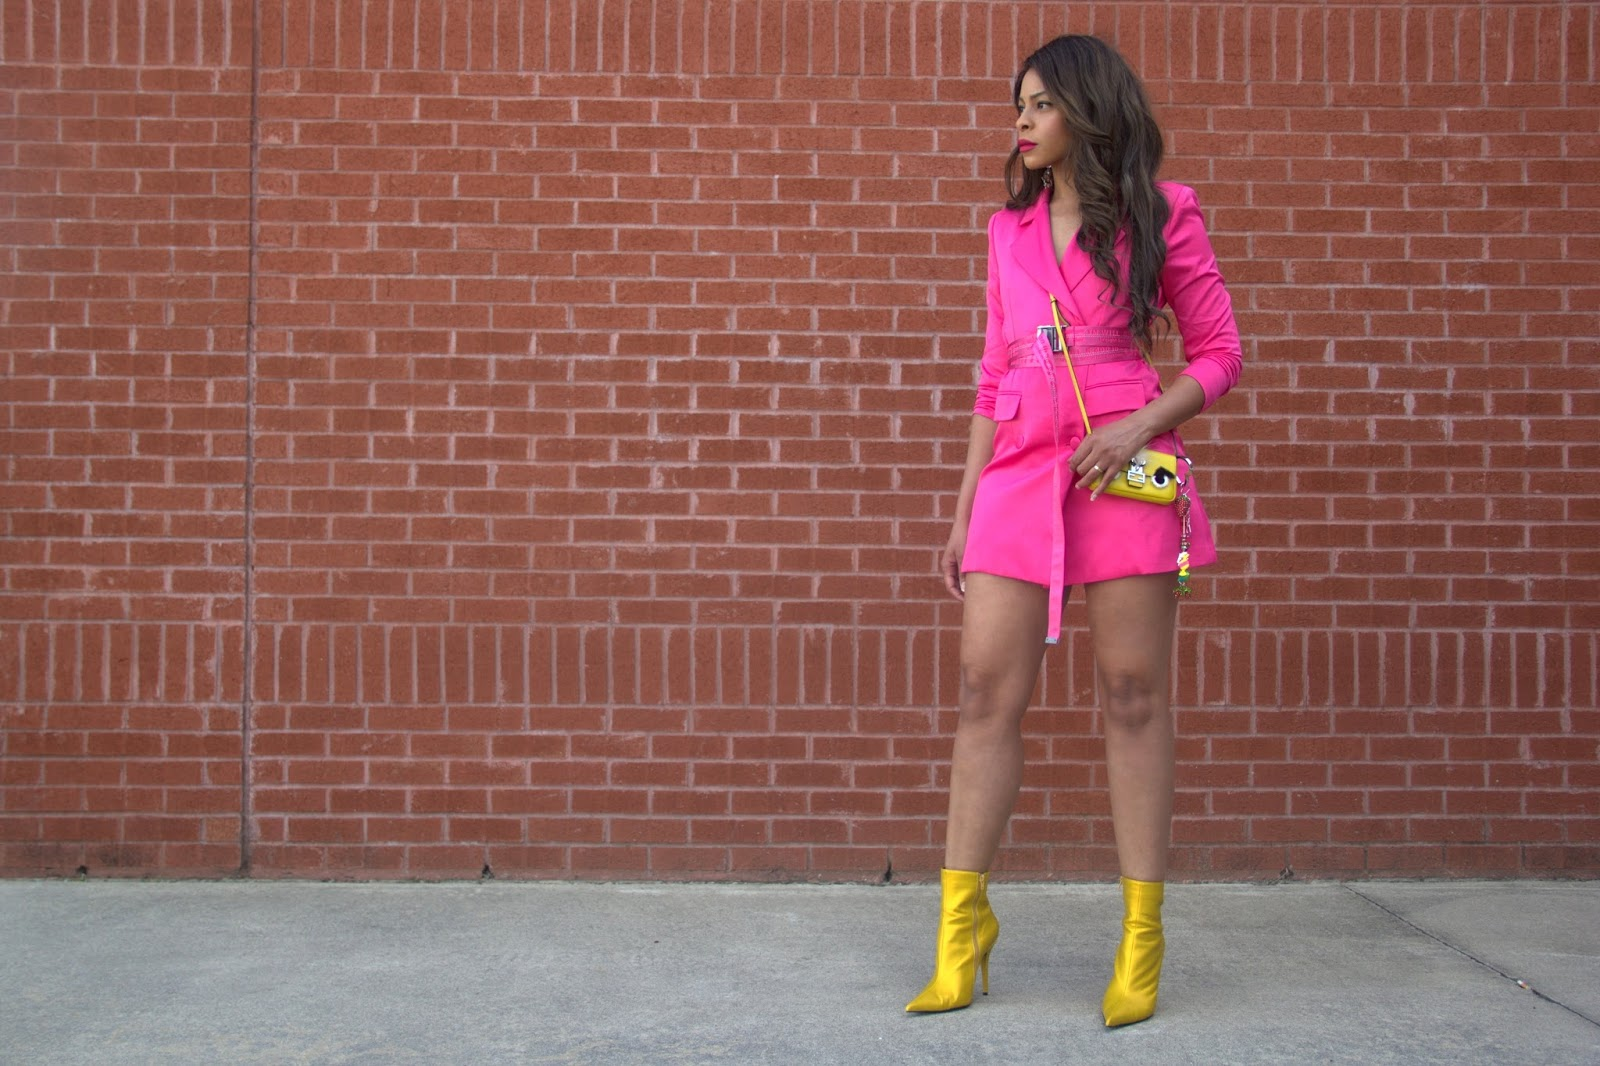 shayla drake greene, allthingsslim, black fashion blogger